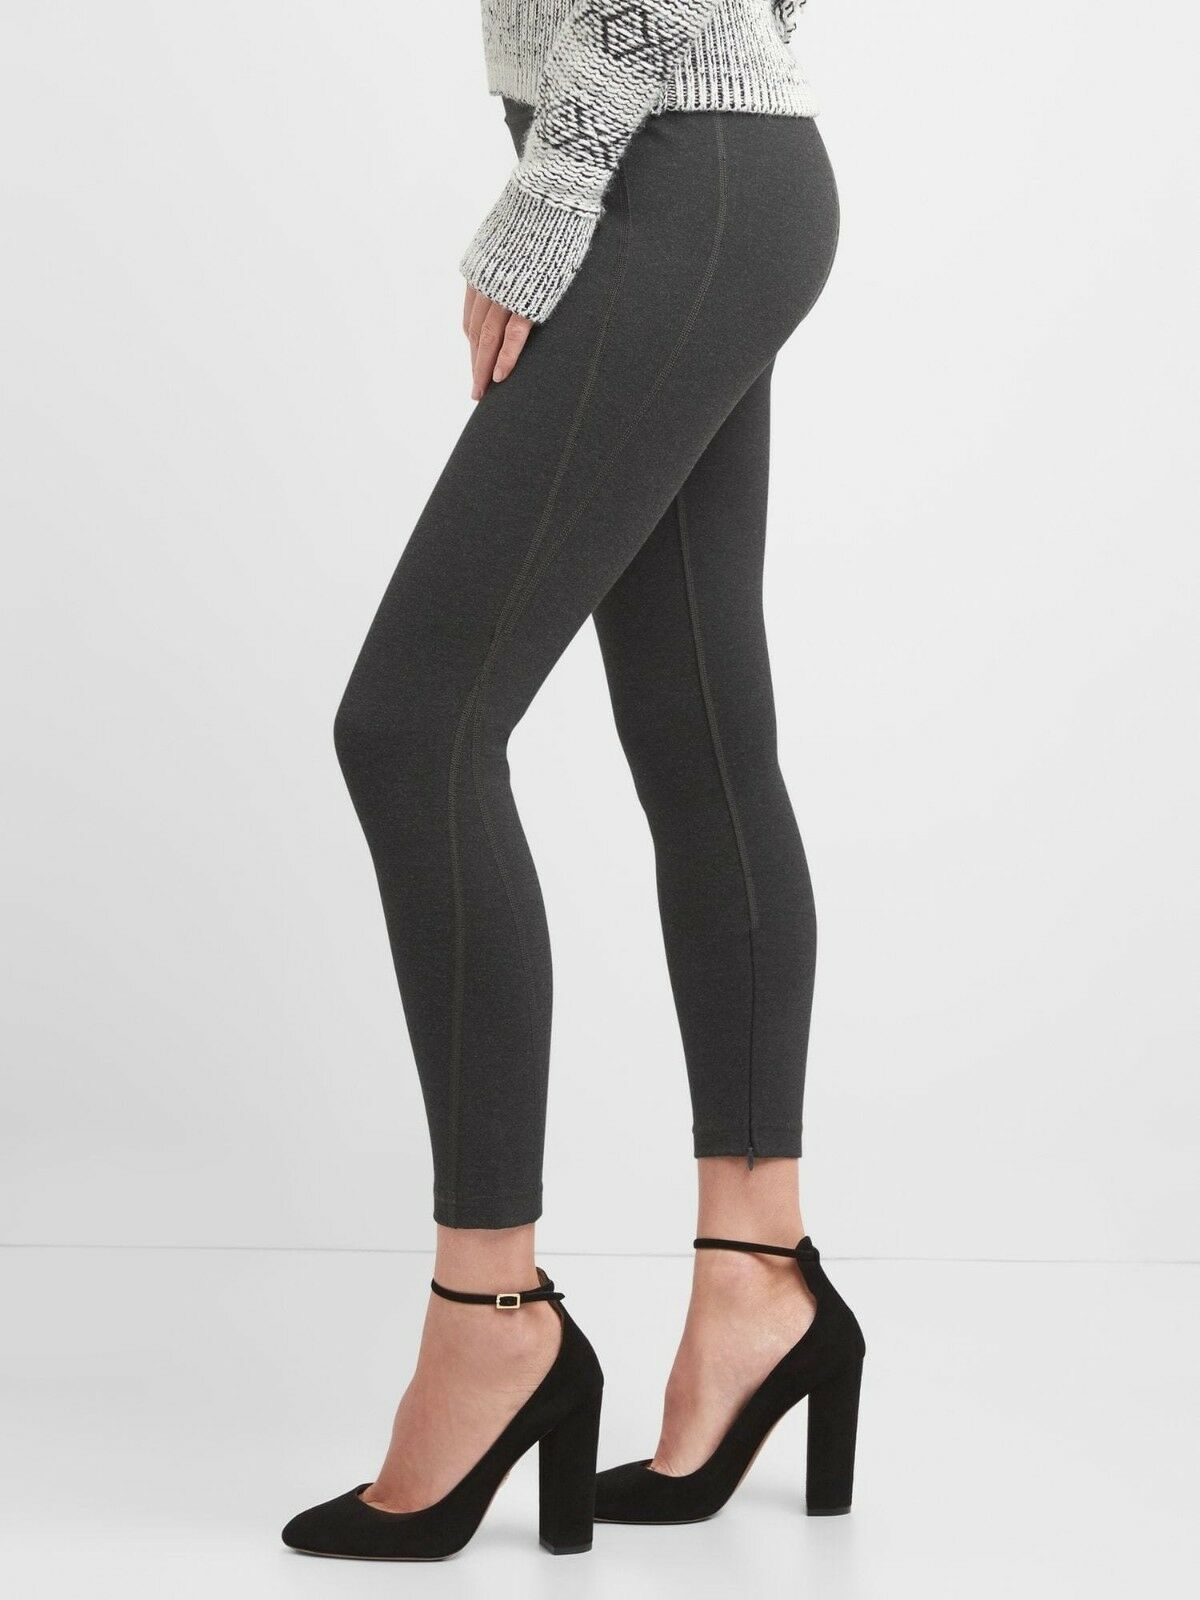 NEW GAP SCULPT HIGH RISE PONTE LEGGINGS TROUSERS GREY SMALL RRP .95 SOLD OUT